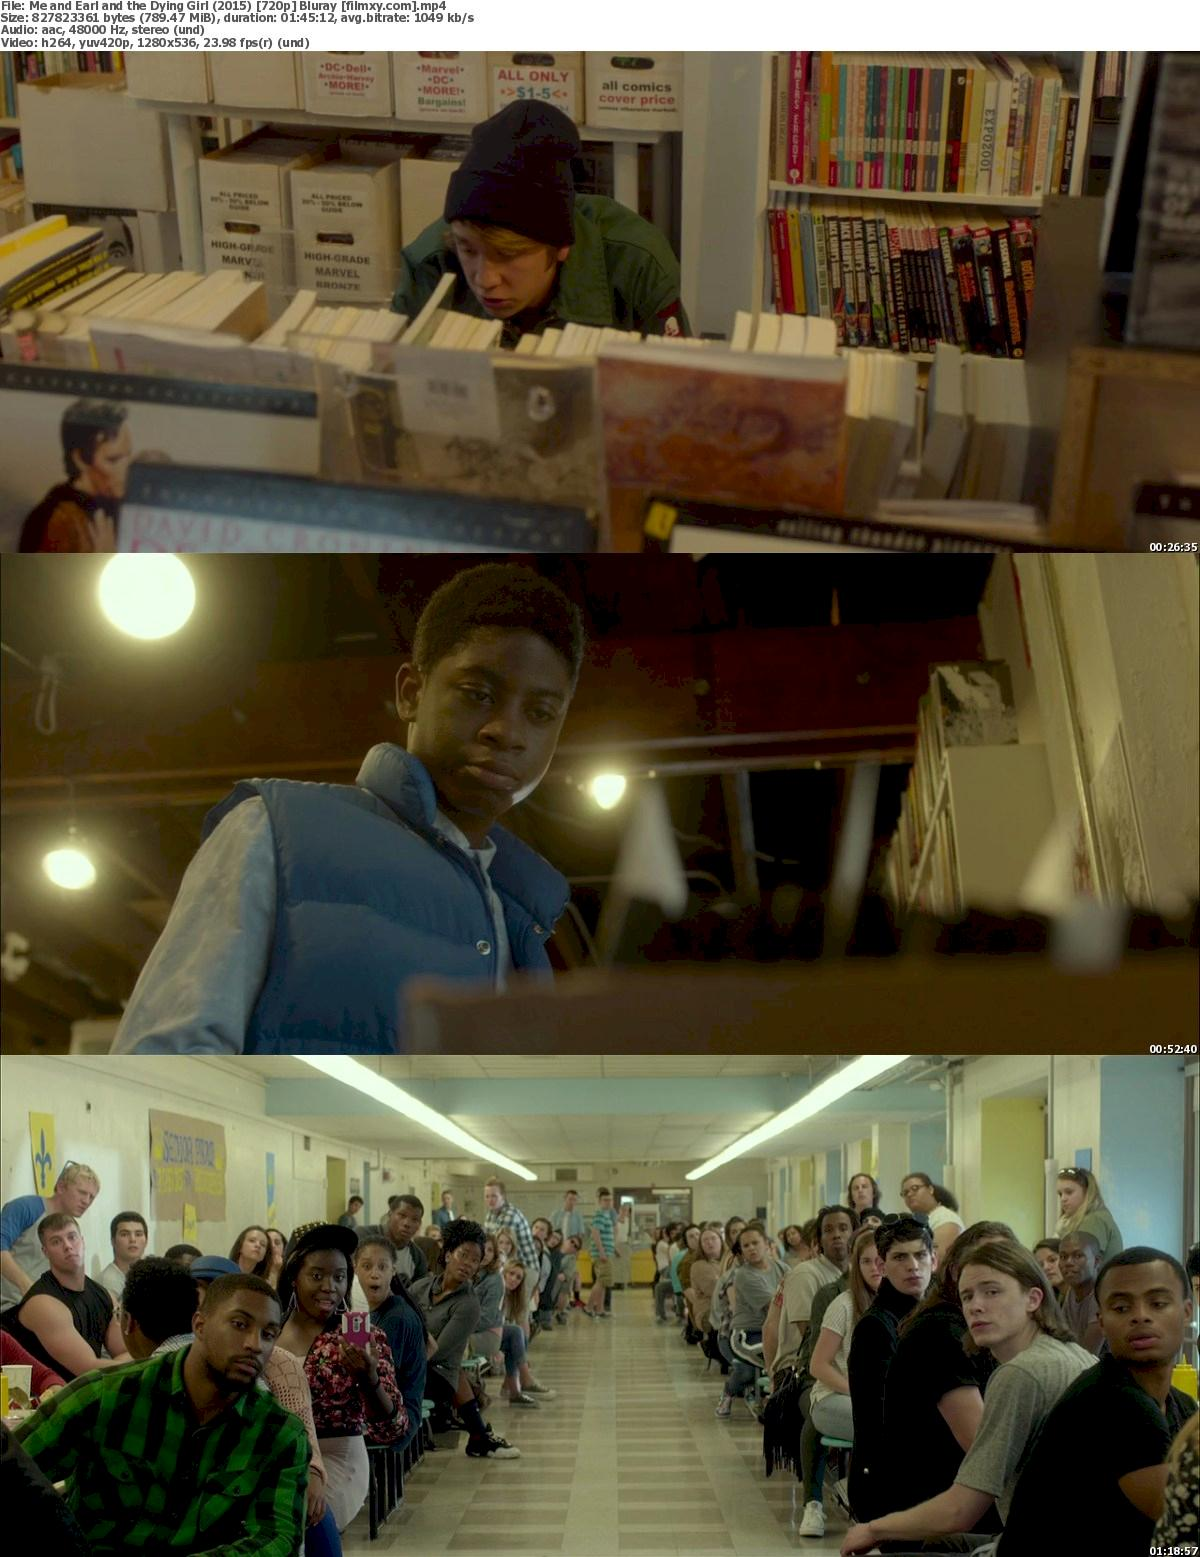 Me and Earl and the Dying Girl (2015) 720p & 1080p Bluray Free Download 720p Screenshot